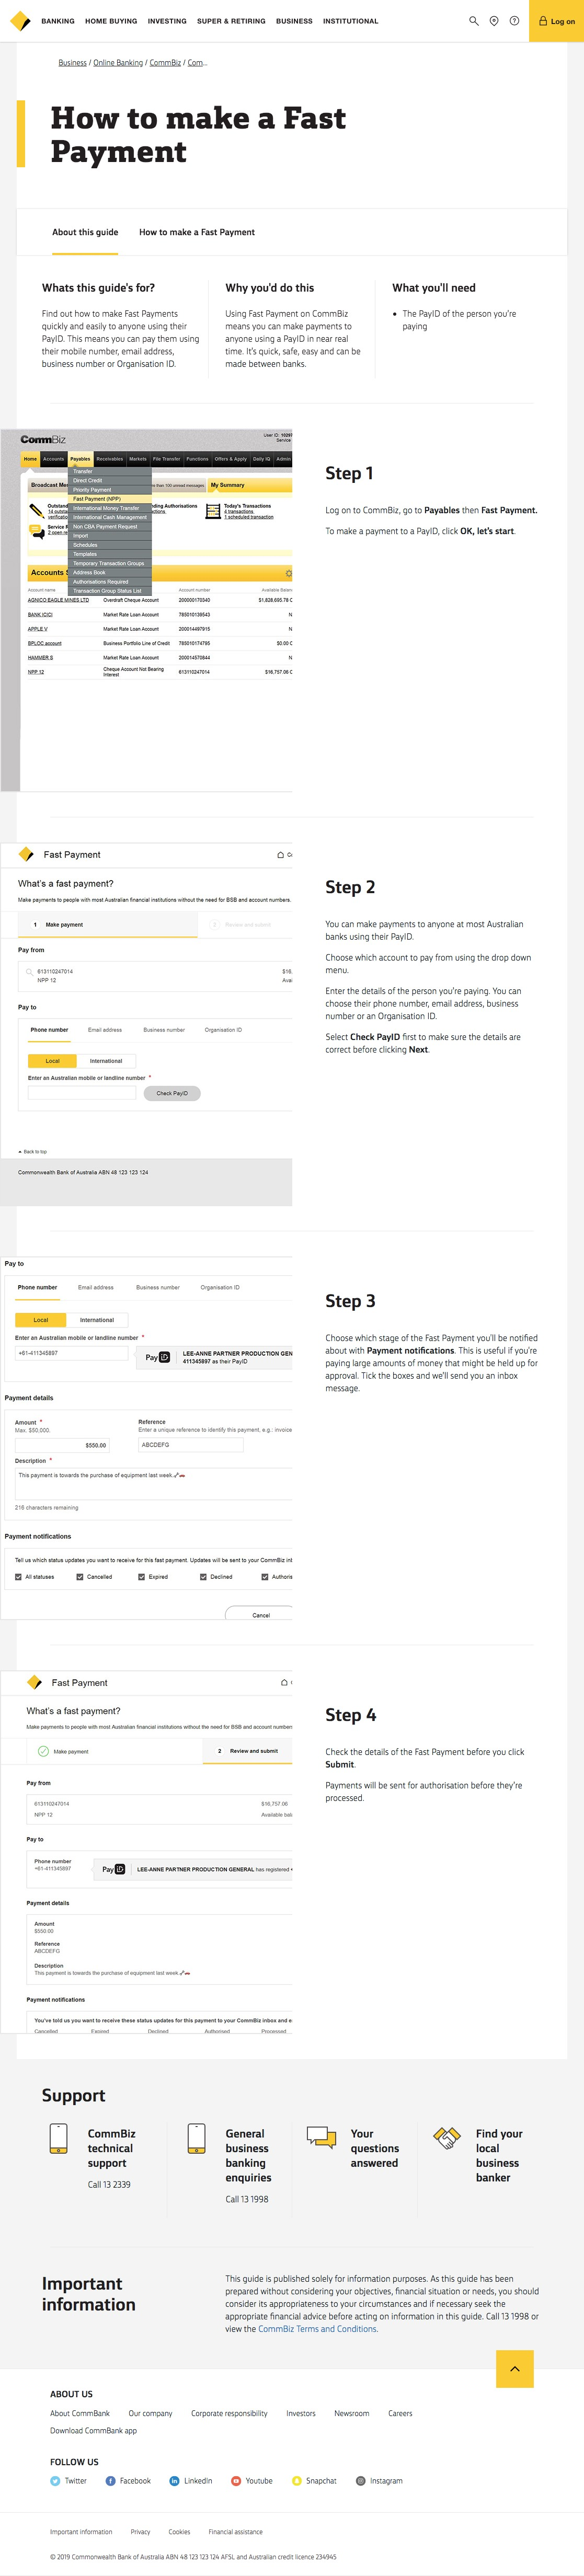 CommBiz - How to make a Fast Payment - CommBank